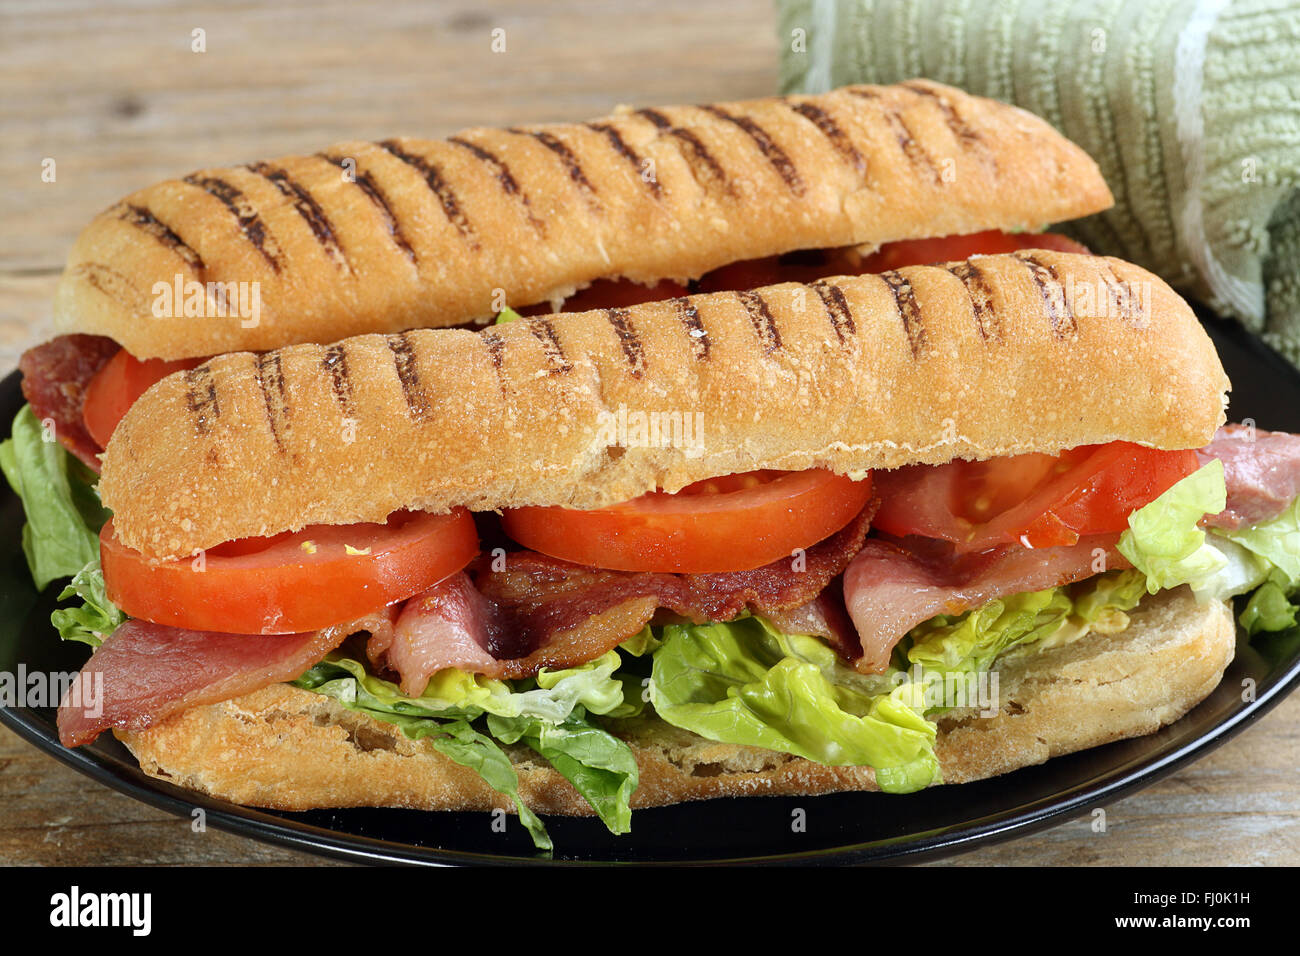 fresh panini filled with crispy bacon lettuce and tomato - Stock Image